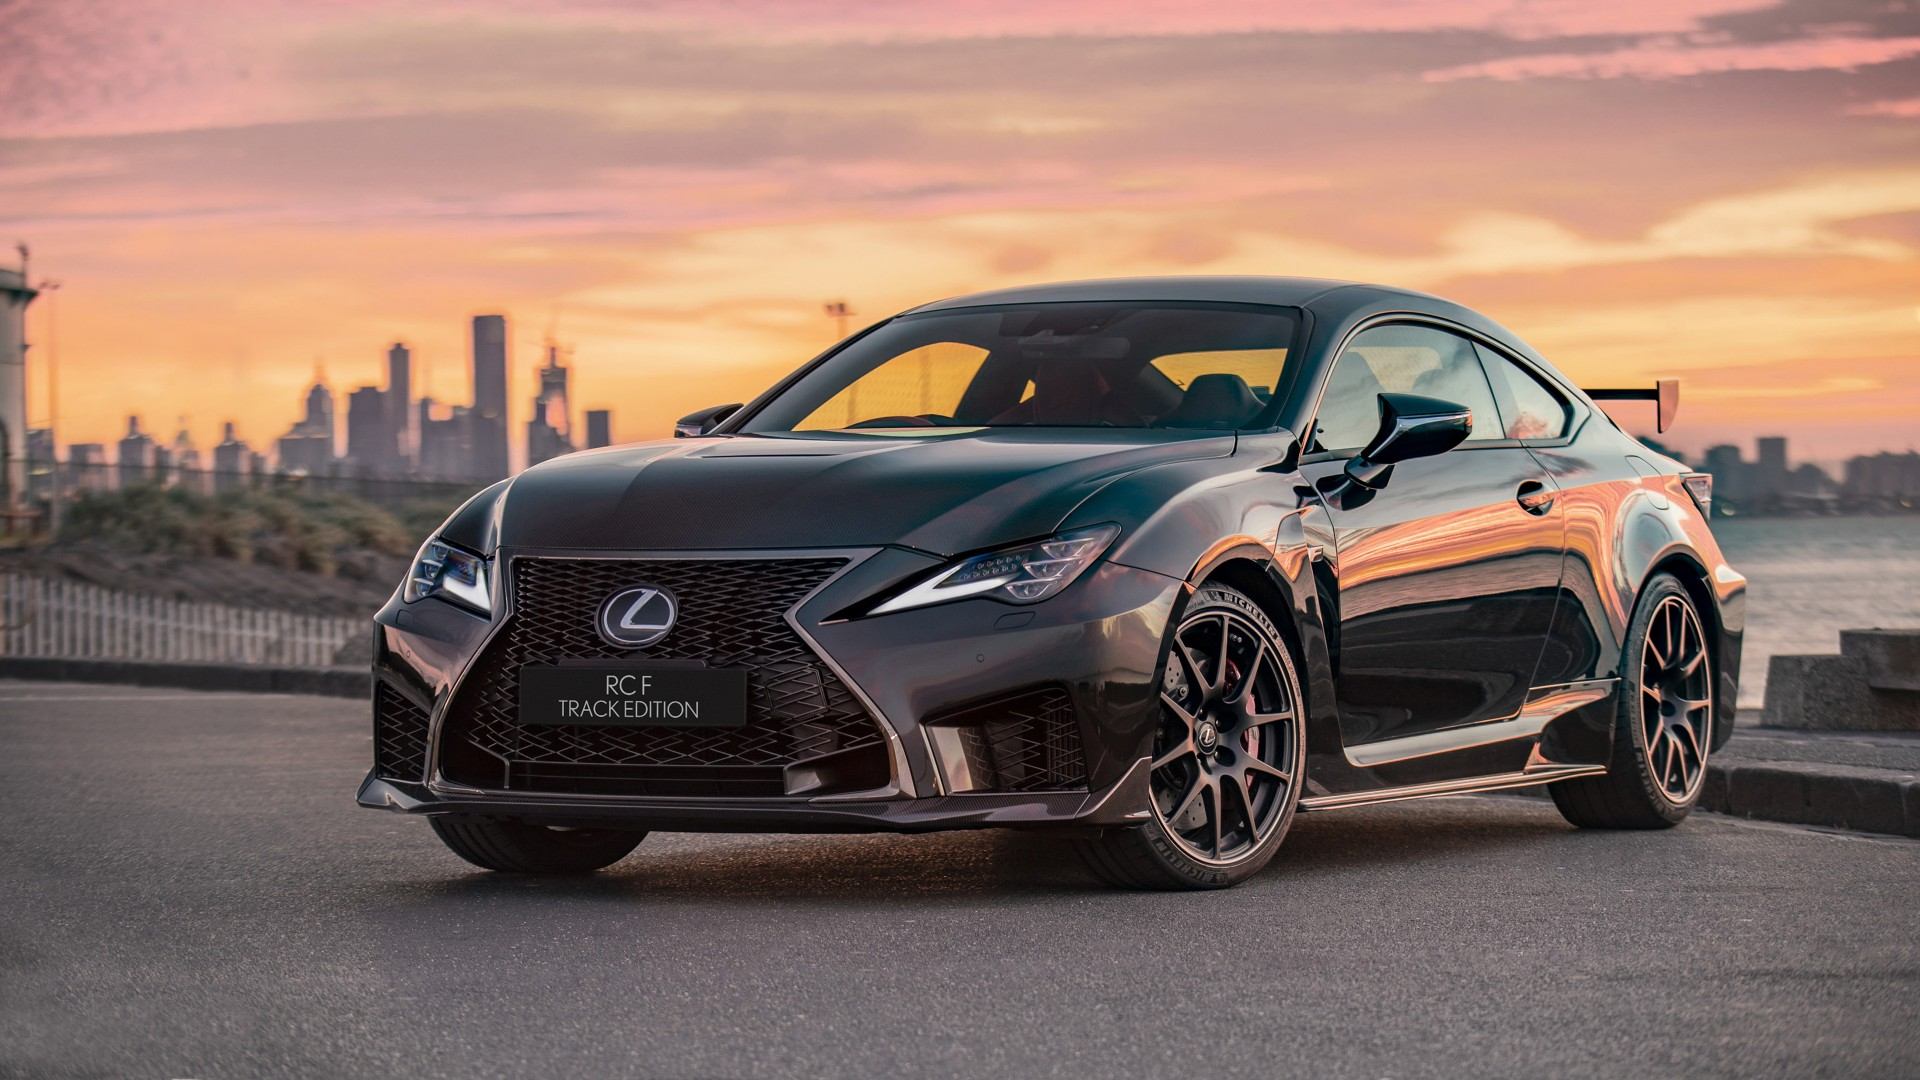 Lexus Is 350 >> Lexus RC F Track Edition 2019 Wallpaper | HD Car Wallpapers | ID #12363